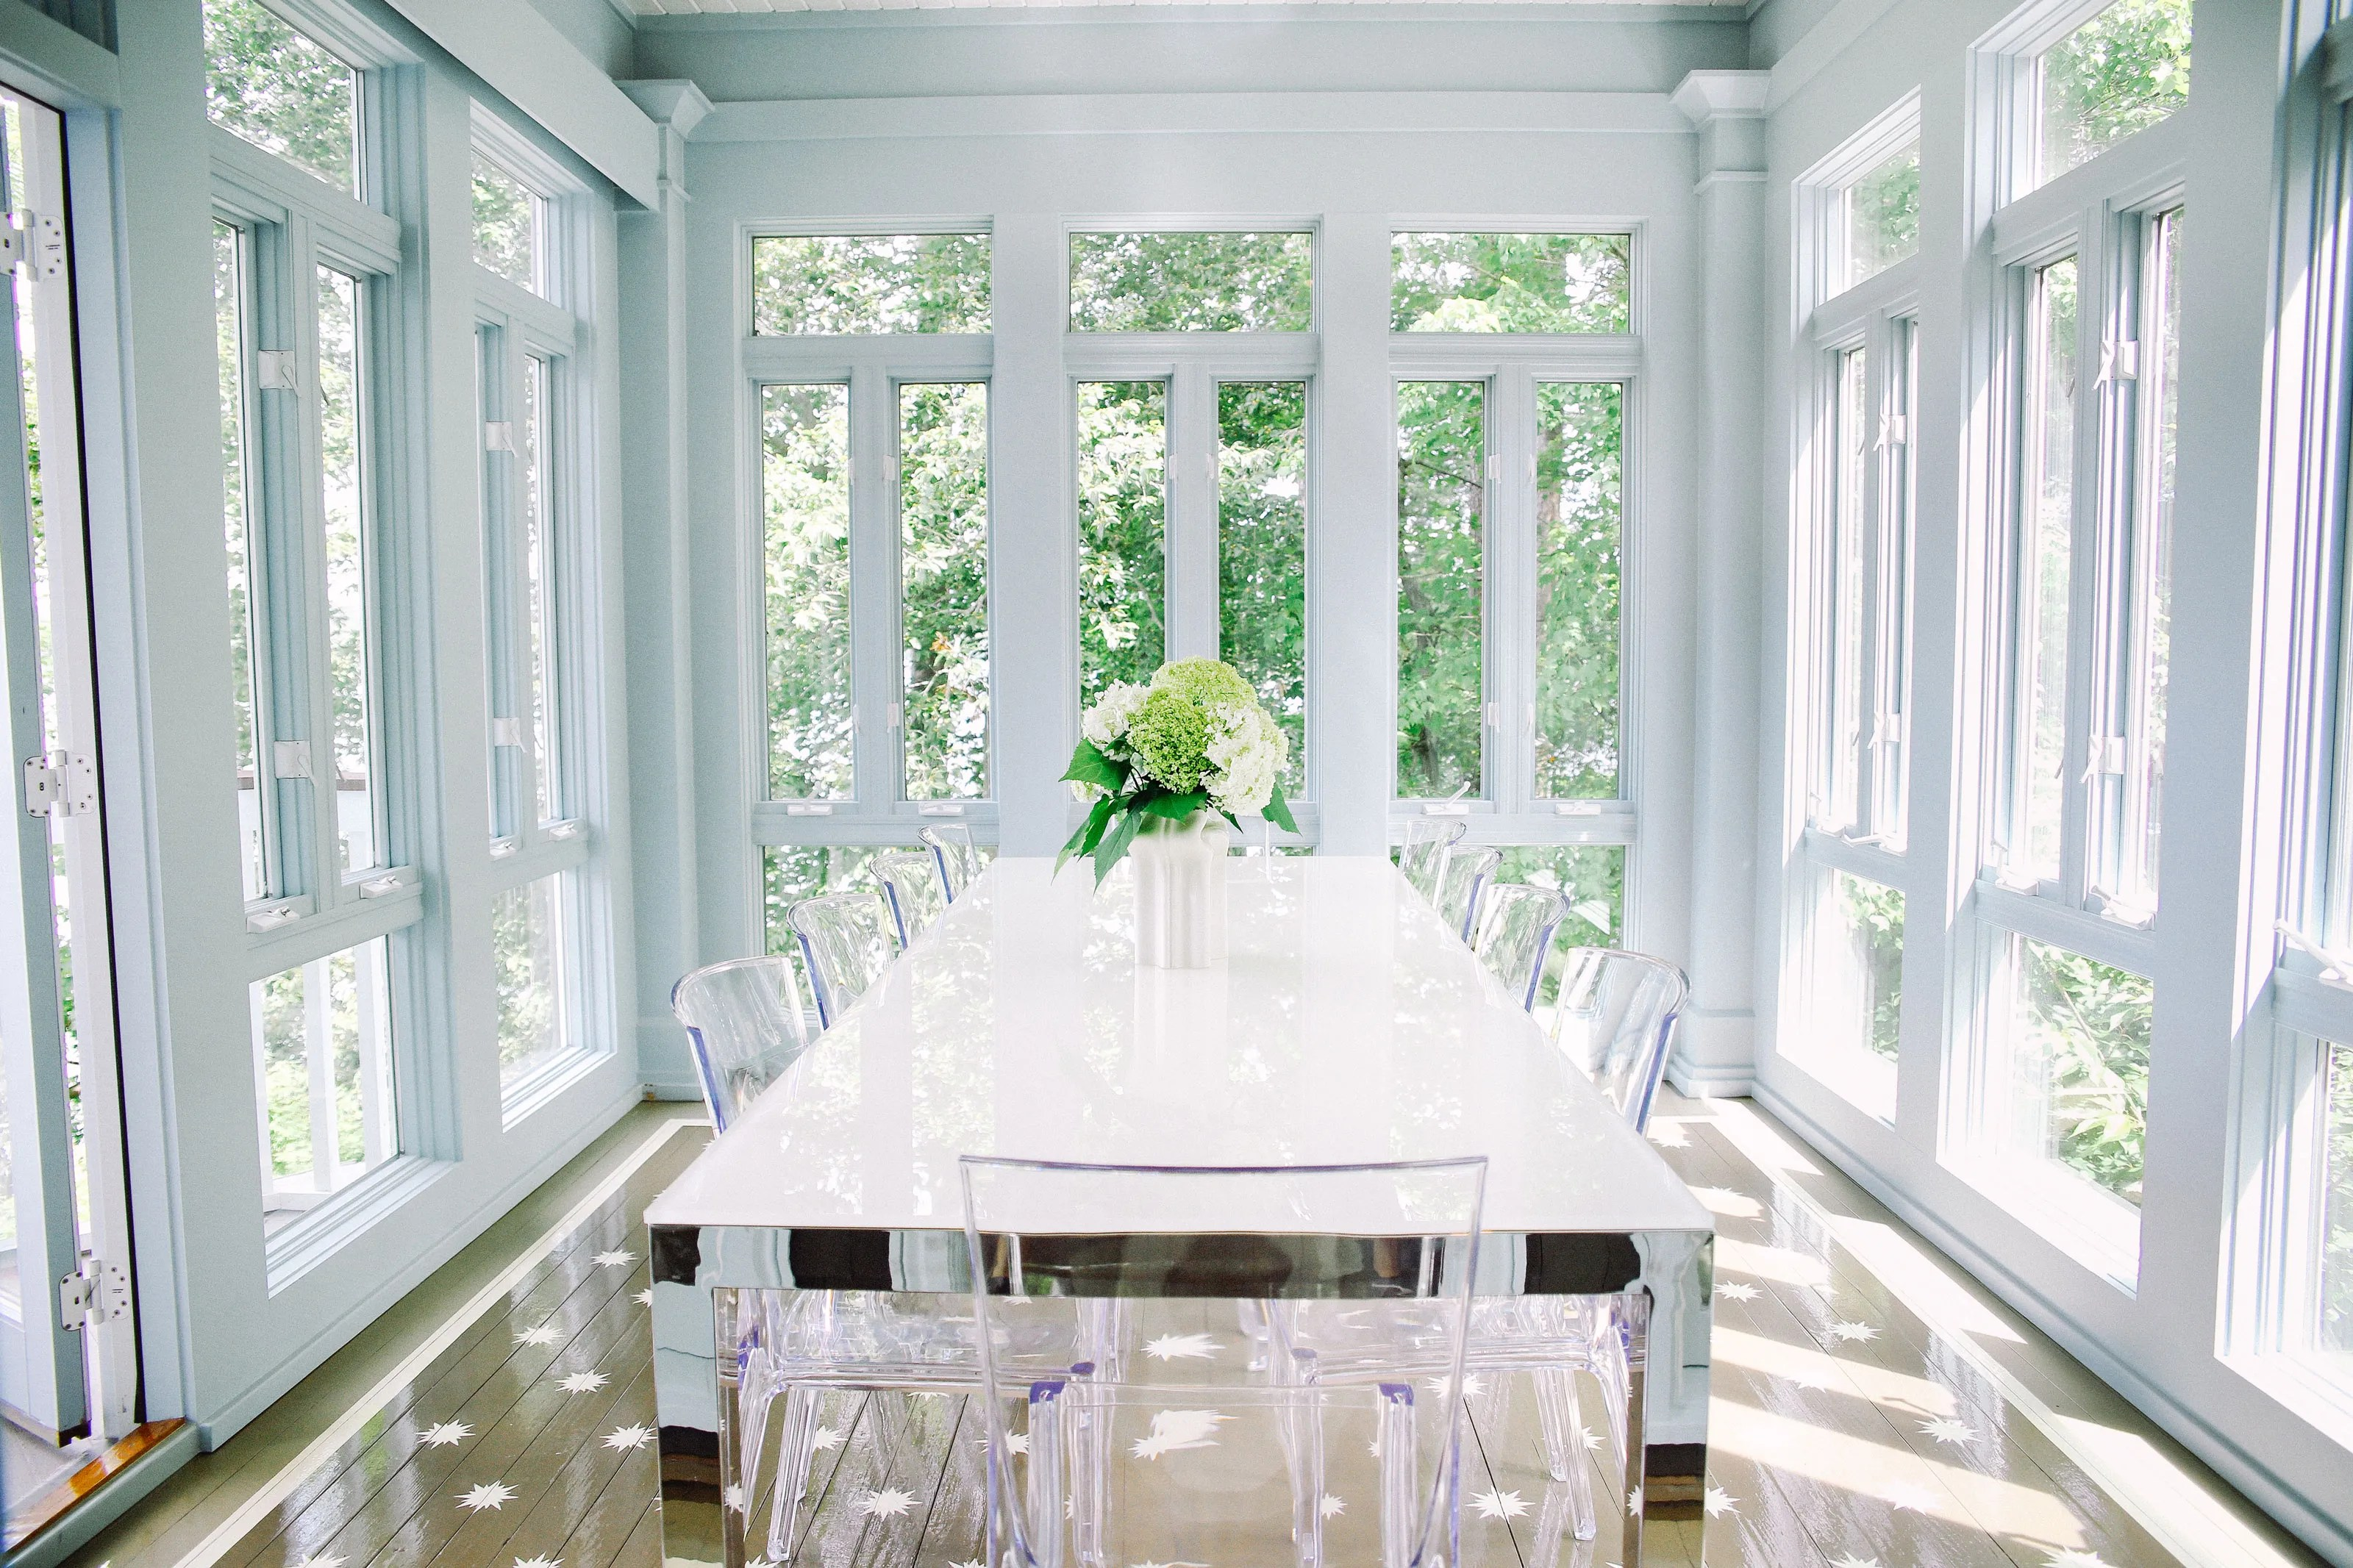 Best Kitchen Gallery: Interior Design Ideas For Home Decorating Architectural Digest of Interior Design For Home  on rachelxblog.com